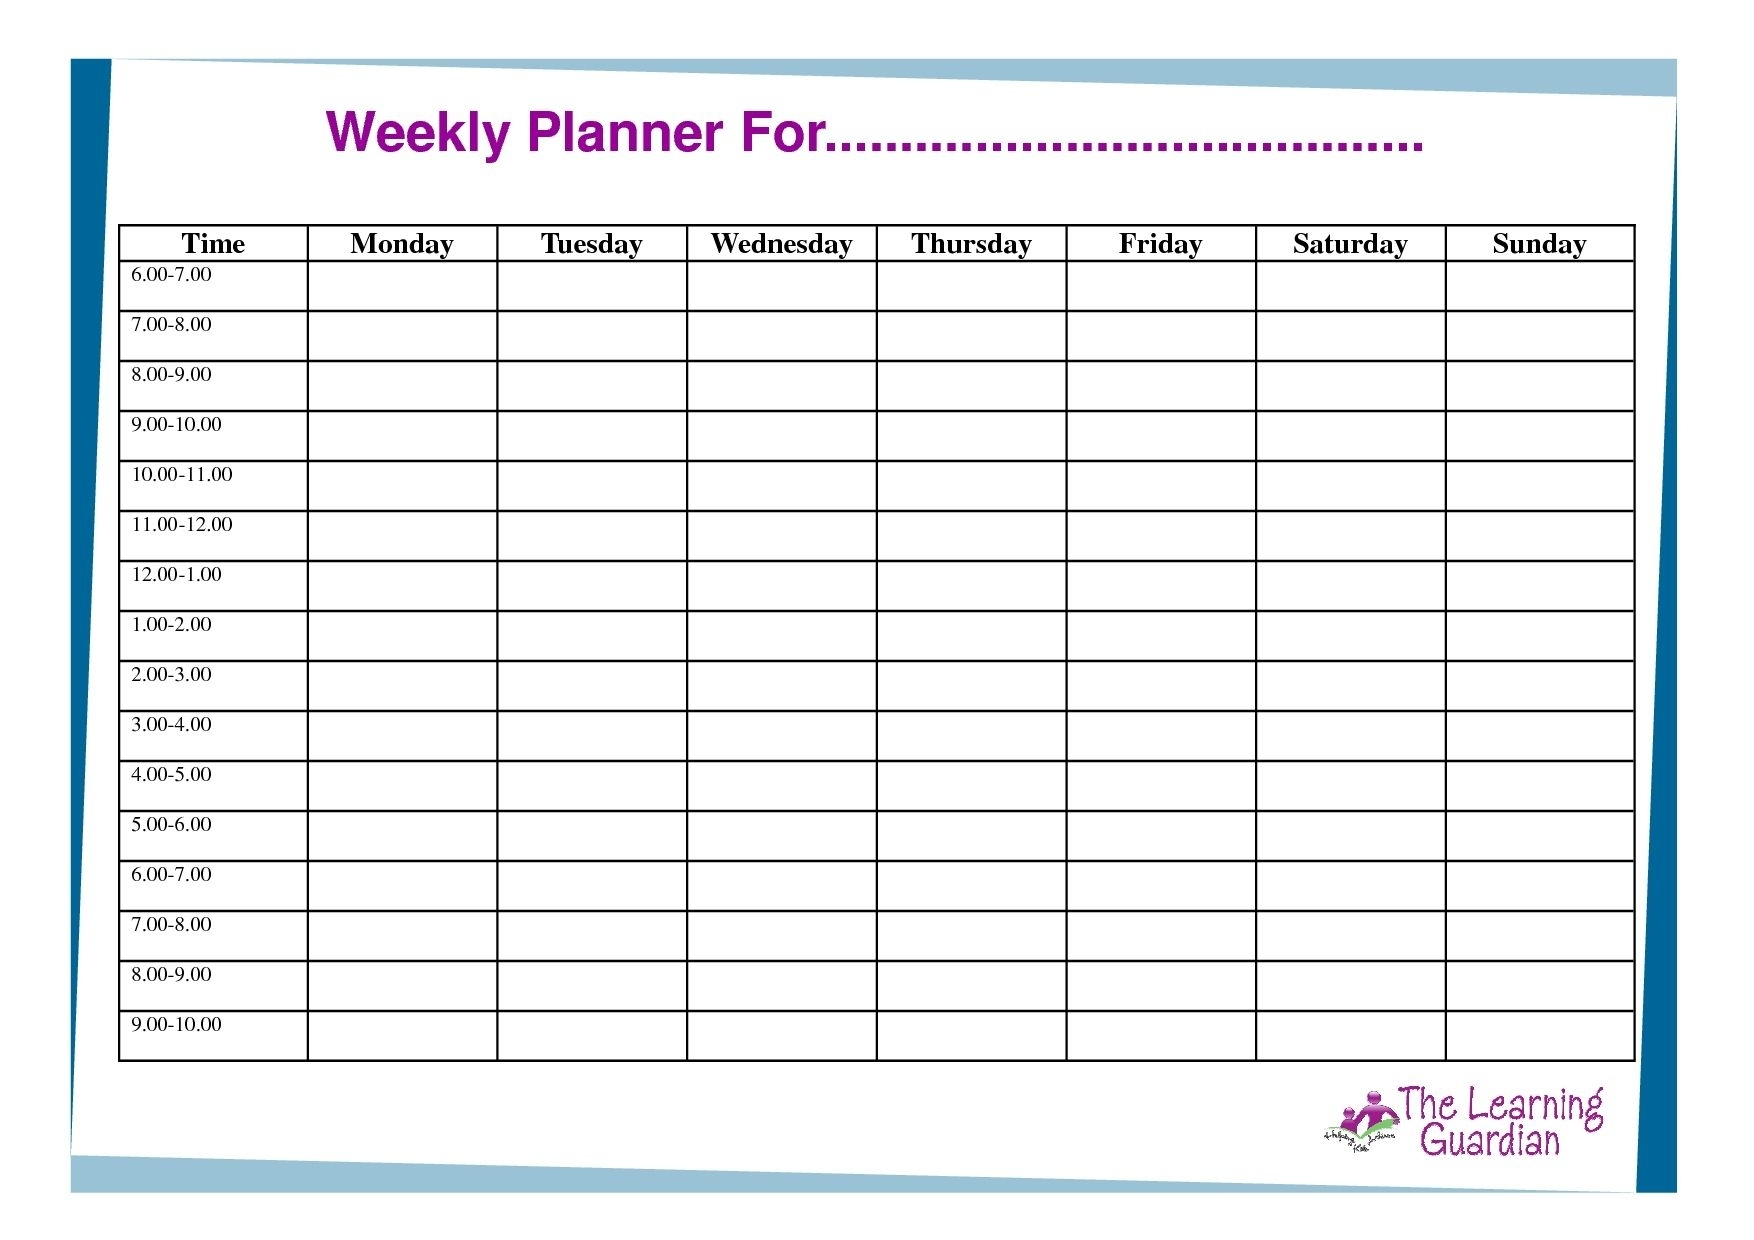 Free Printable Weekly Calendar Templates Planner For Time Incredible with regard to Free Printable Weekly Calendar Templates